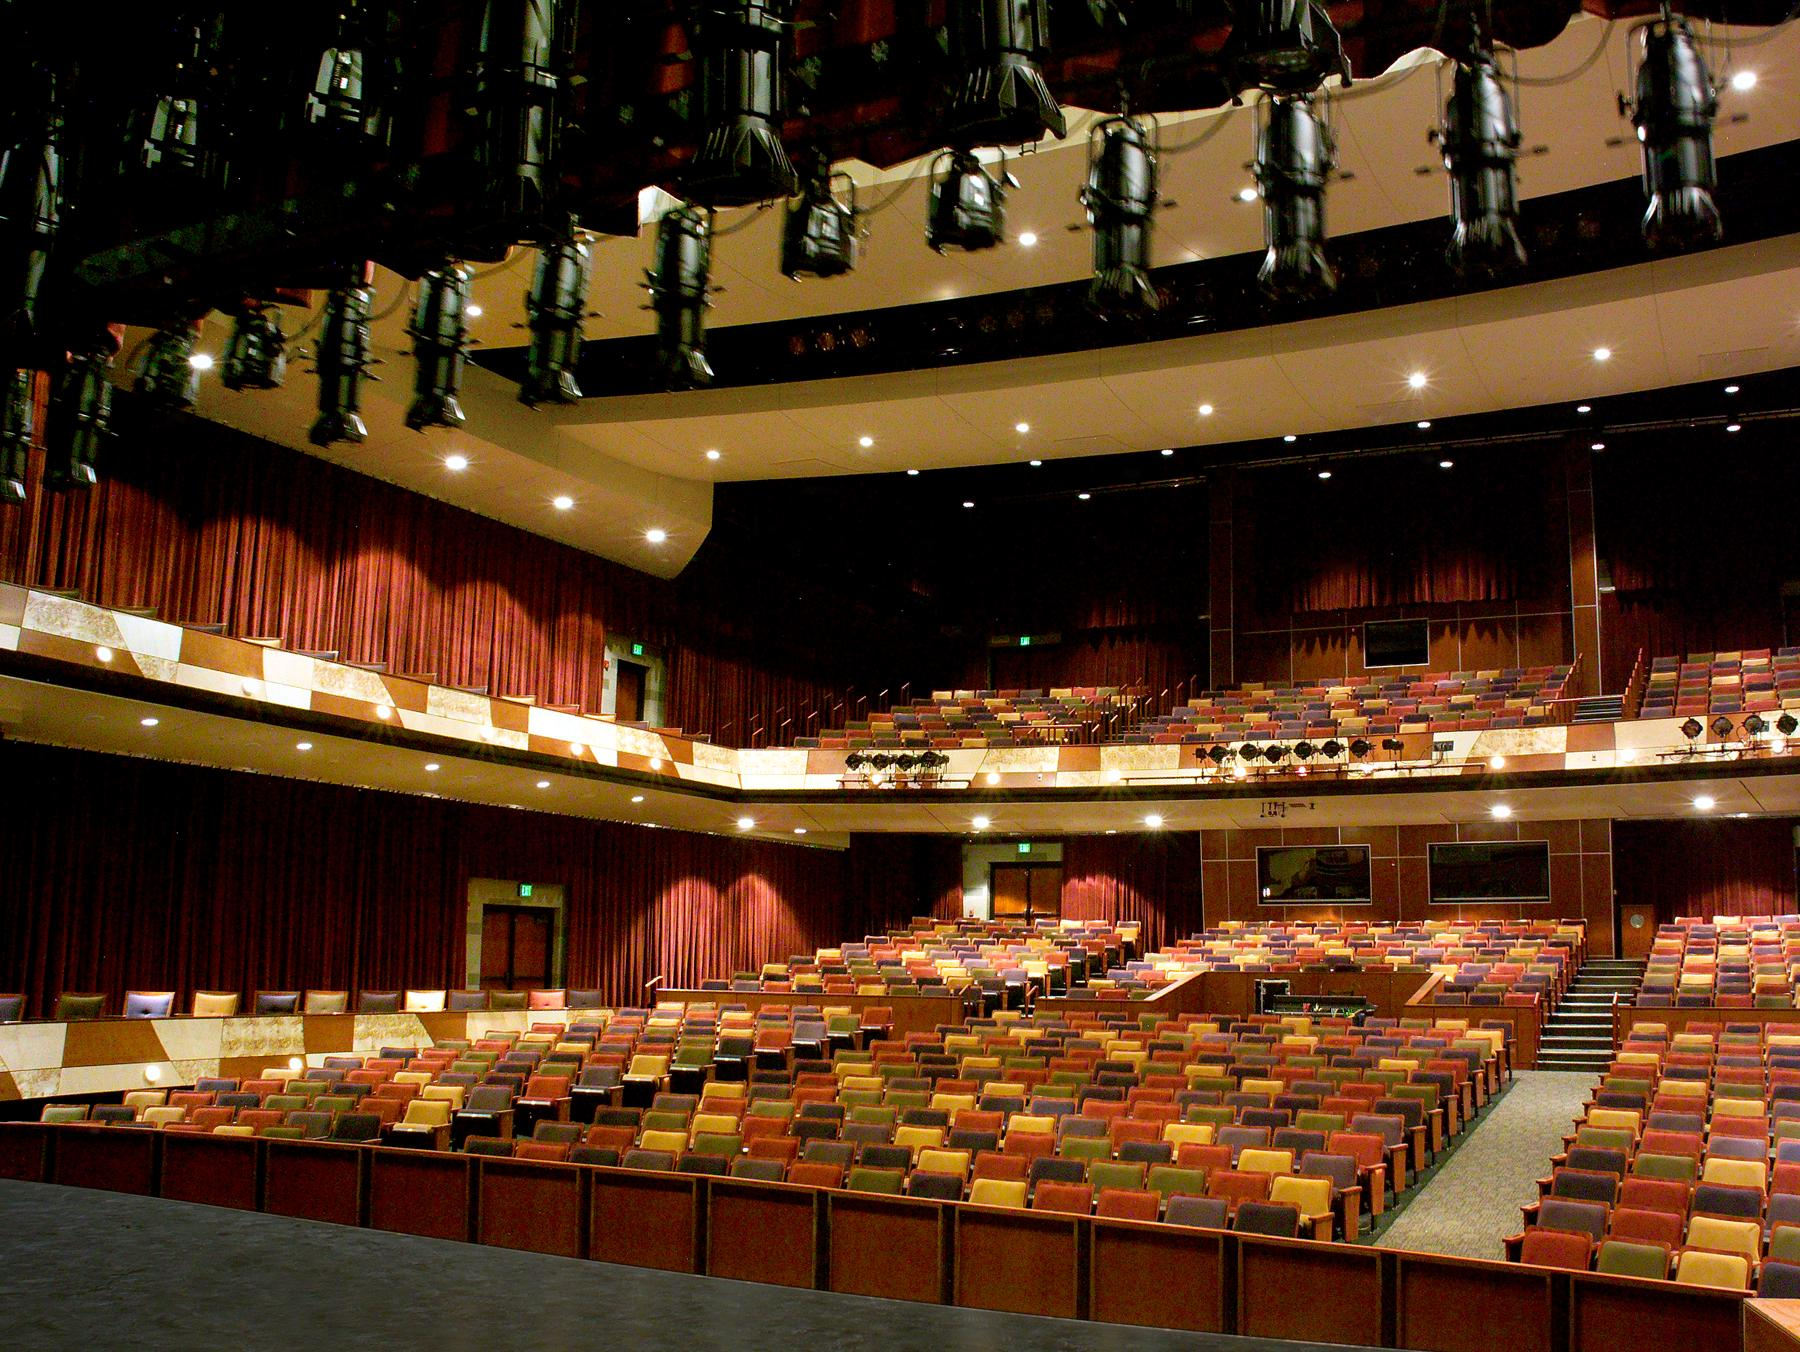 Penn State York - Pullo Family Performing Arts Center